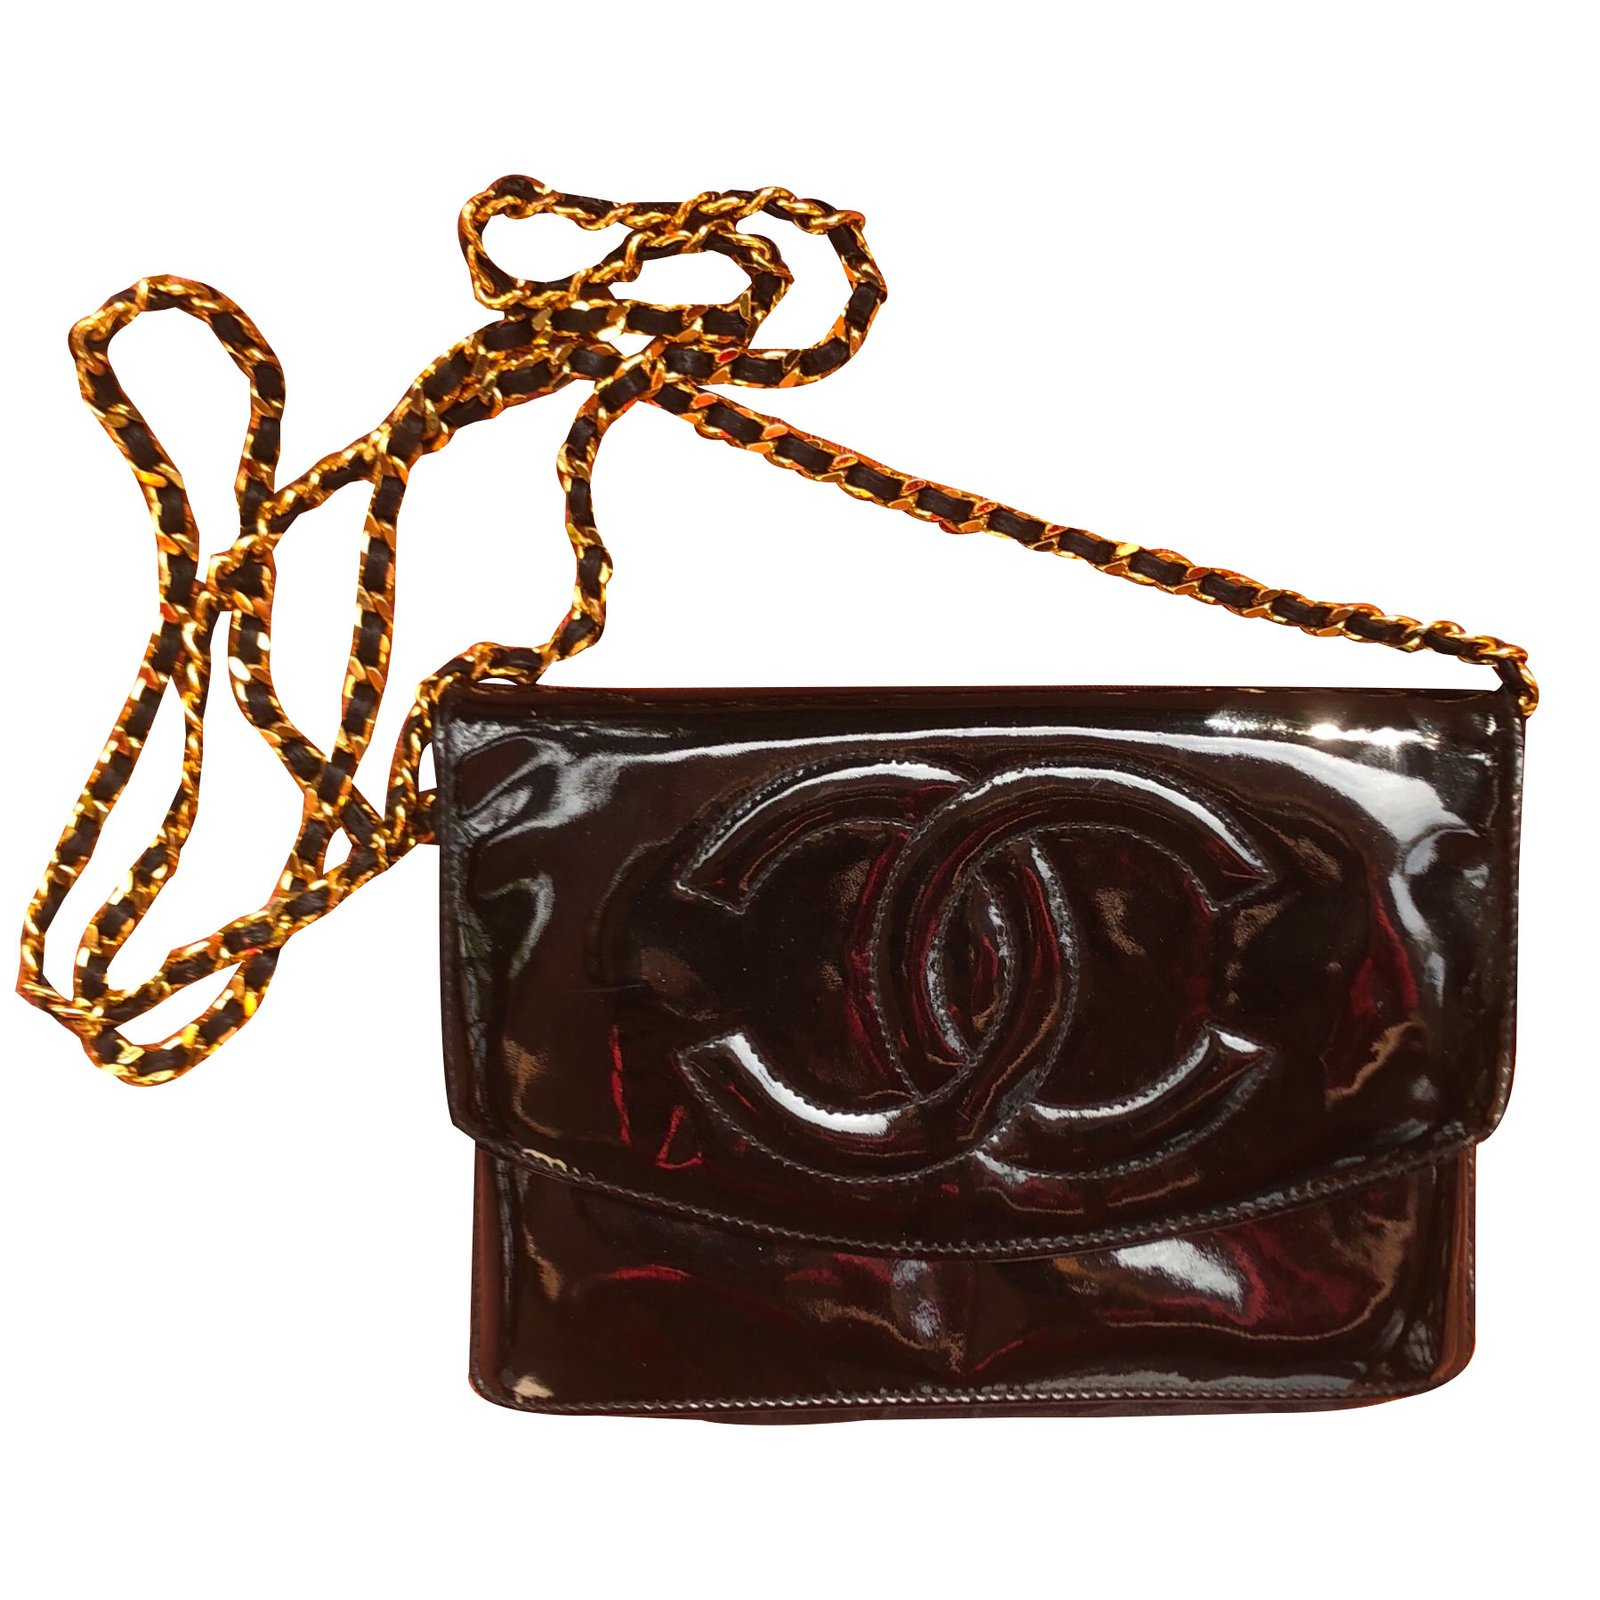 5f3526bd6dab Chanel wallet on chain Clutch bags Patent leather Black ref.80572 ...